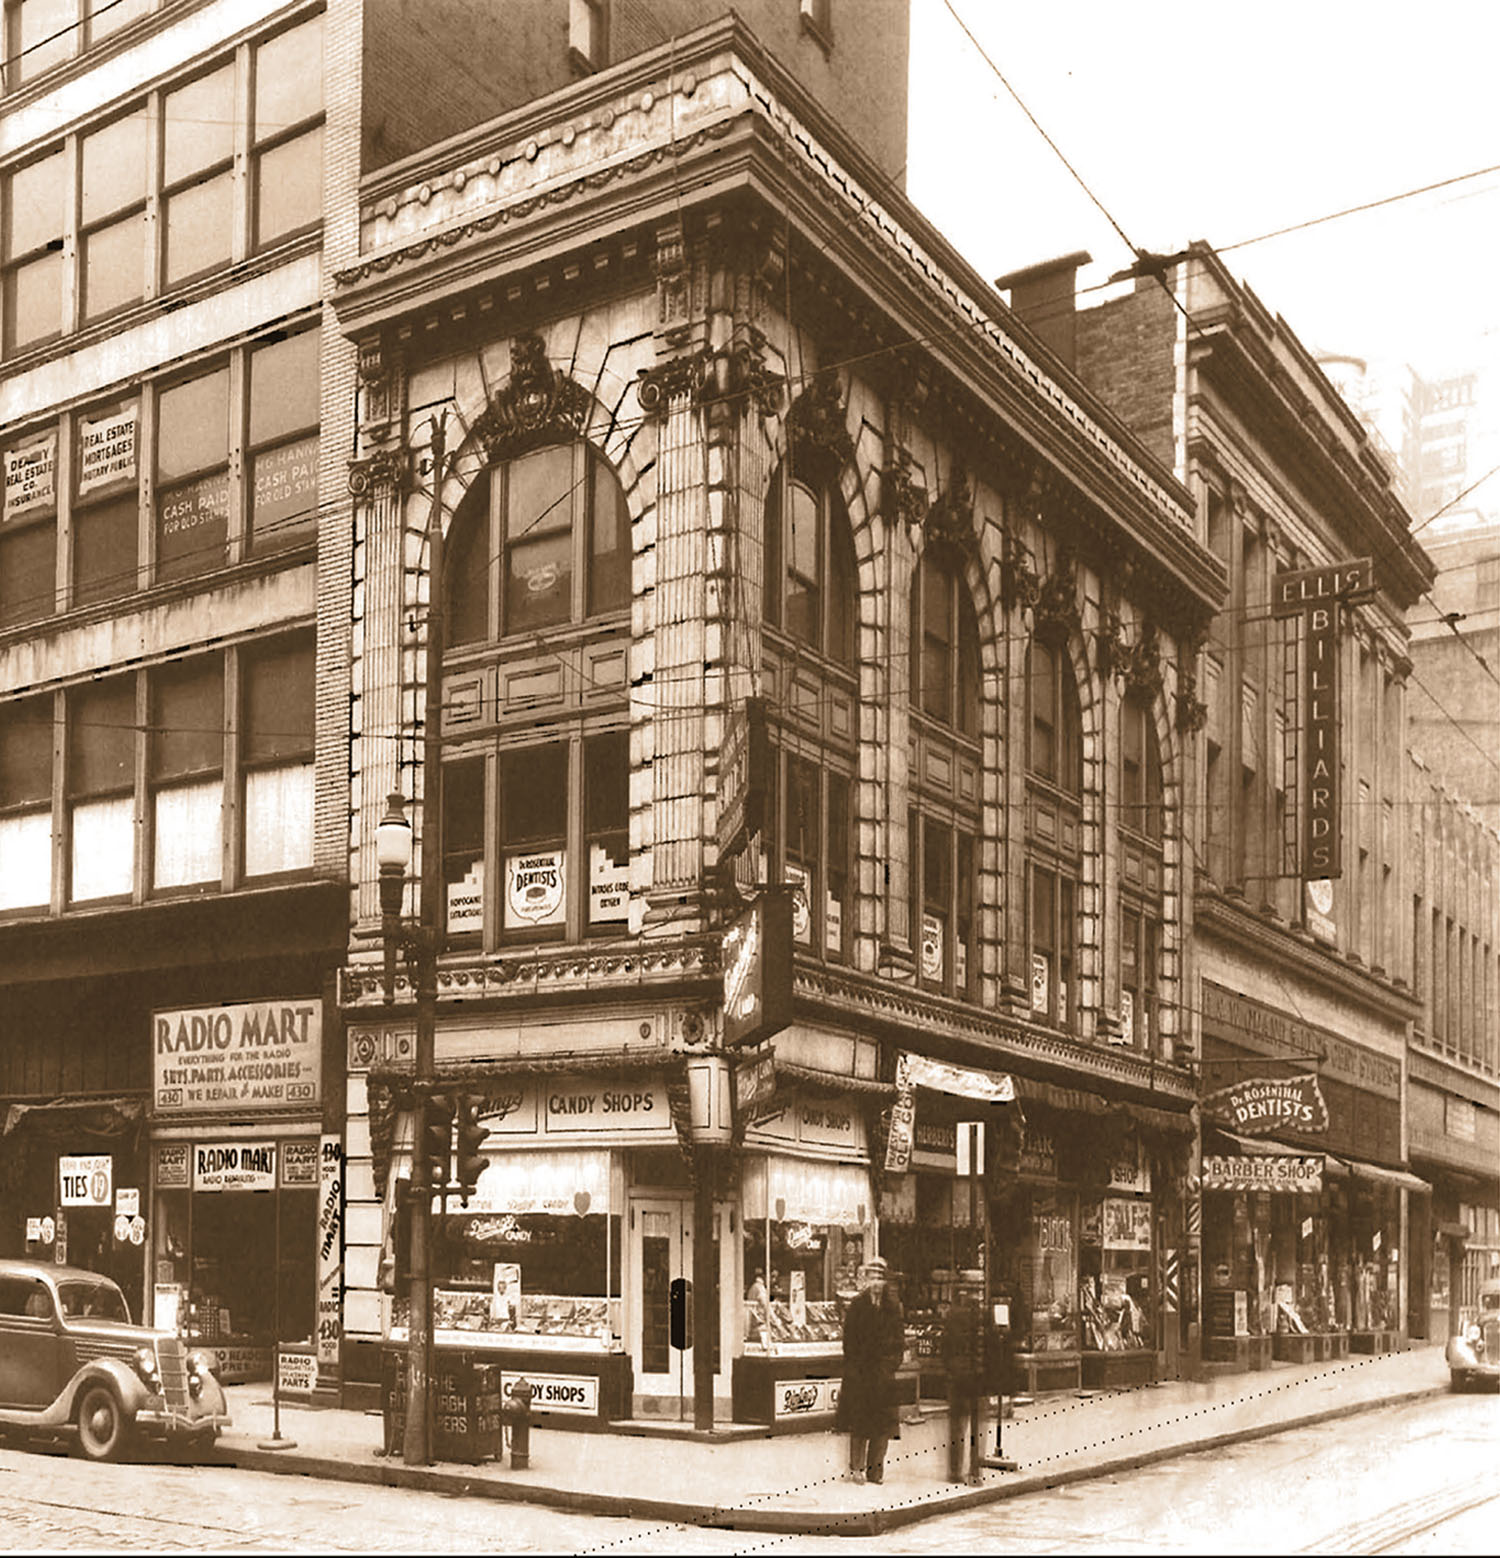 These two buildings, circa 1920, had to be razed to make way for the Tower at PNC Plaza. PNC saved the terra-cotta facade material for later reuse. Most of the material used in making  Earth, Water, Fire, and Air  came from the Ellis billiards hall, on the right.